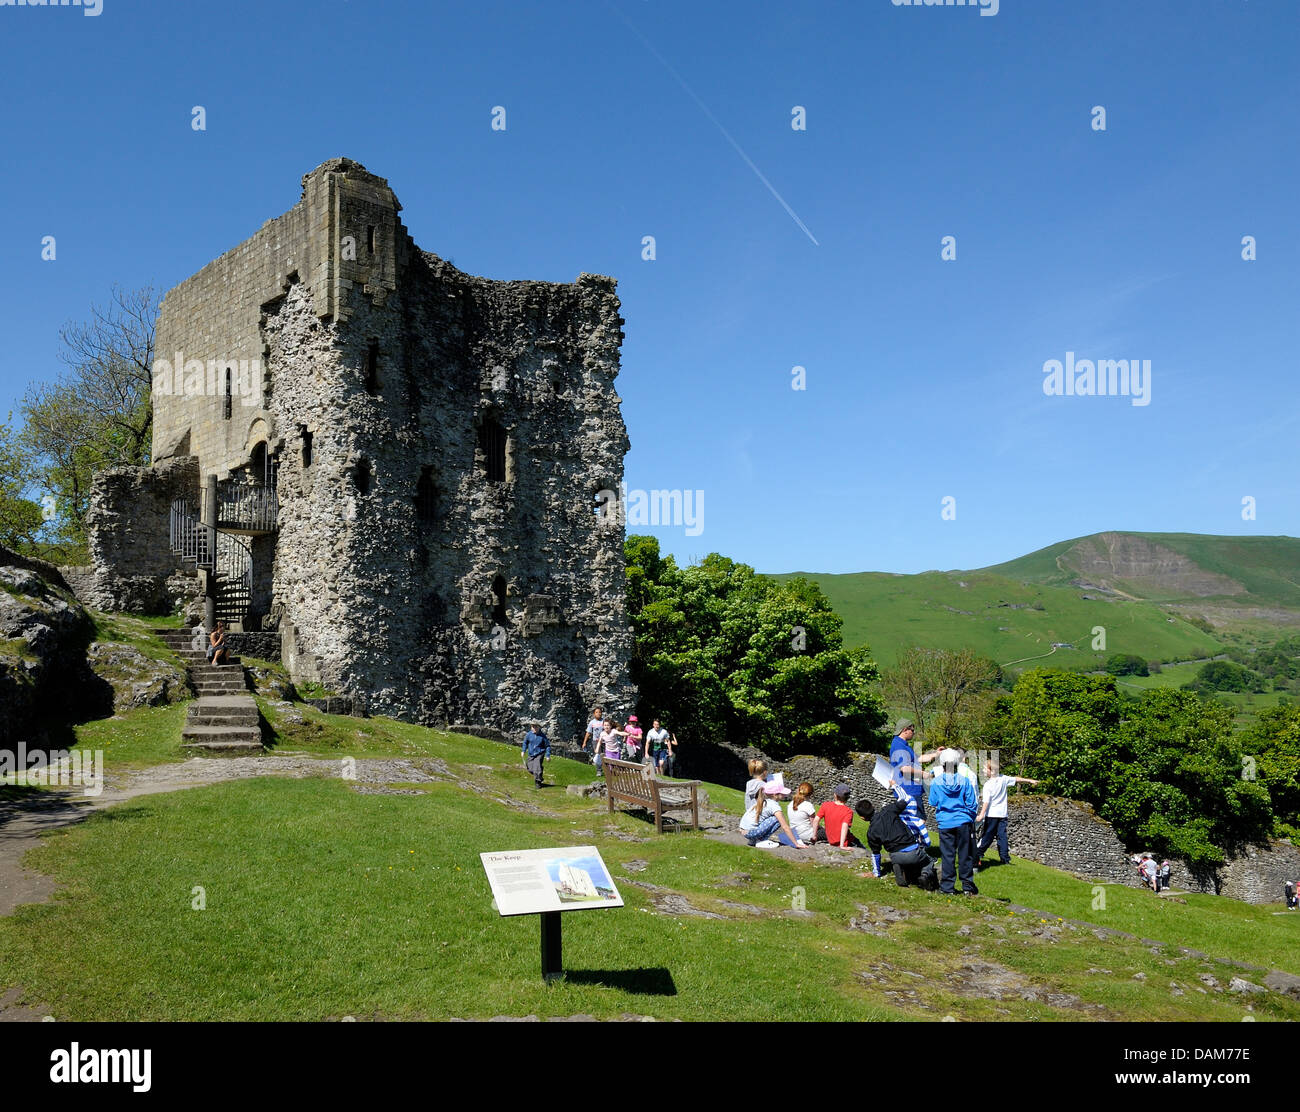 schoolchildren inside the grounds of Peveril castle Castleton Derbyshire England uk - Stock Image